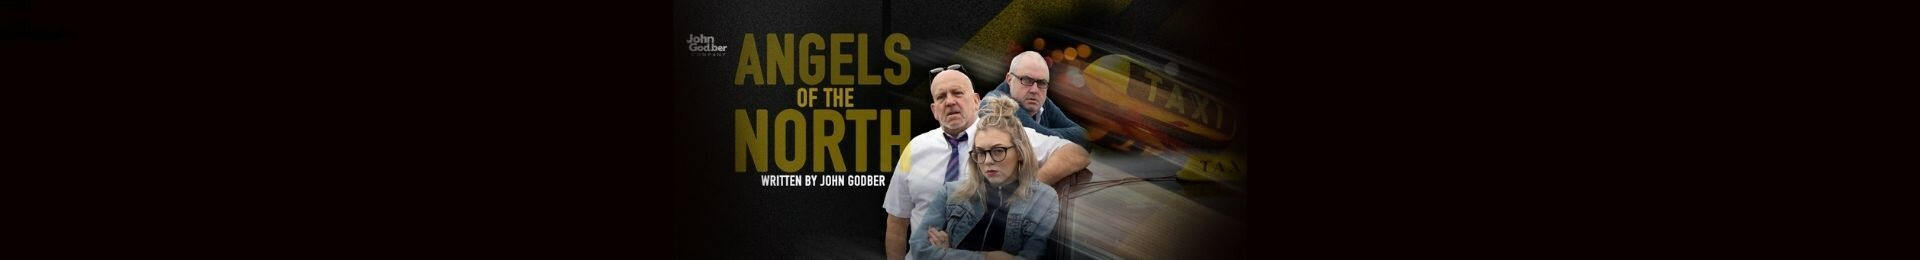 Angels of the North banner image